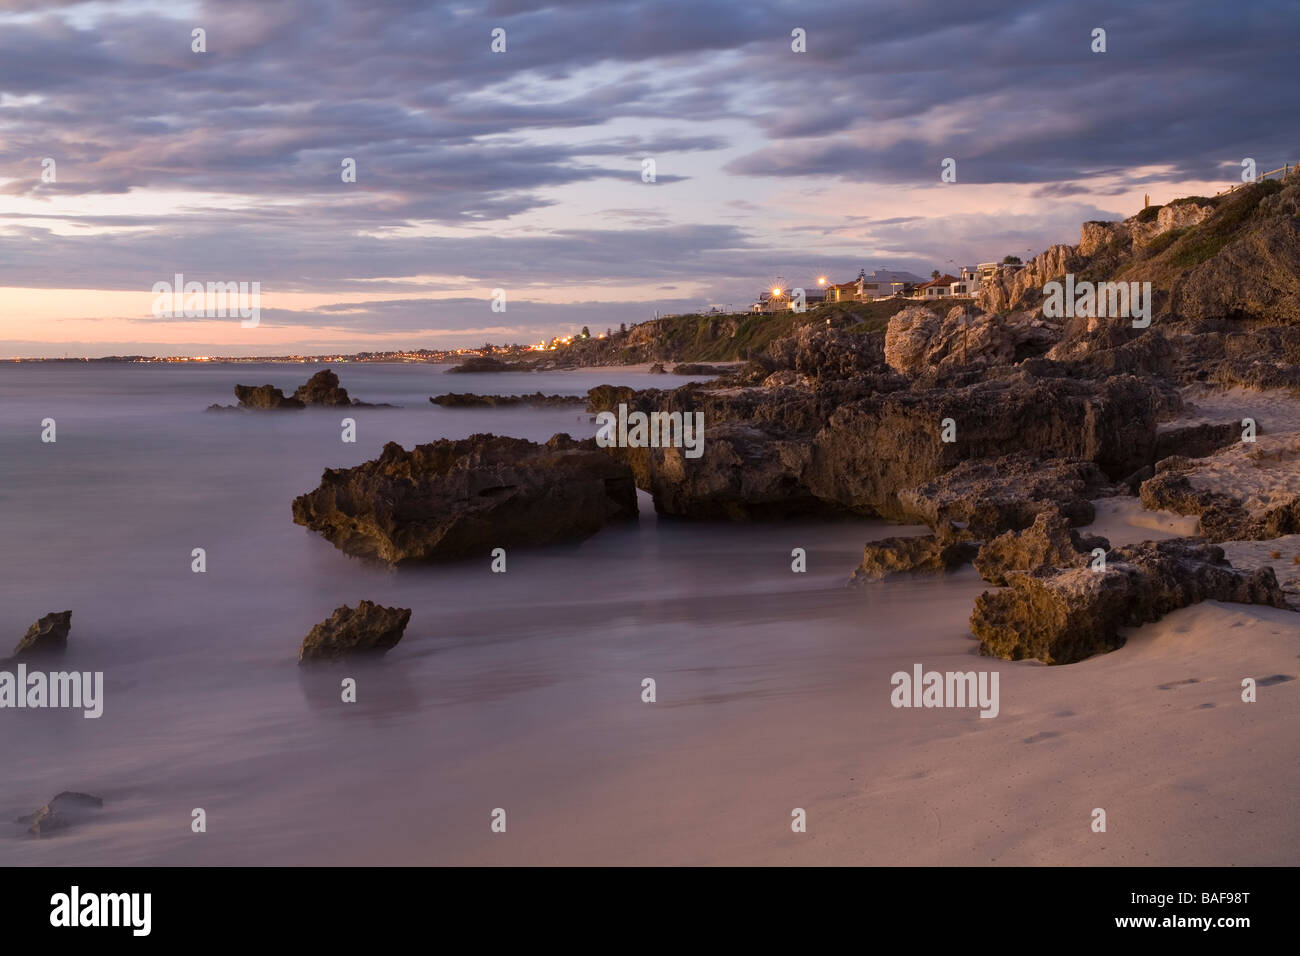 Benion Beach at sunset beside Trigg Beach on the coastal suburbs of Perth, capital city of Western Australia - Stock Image